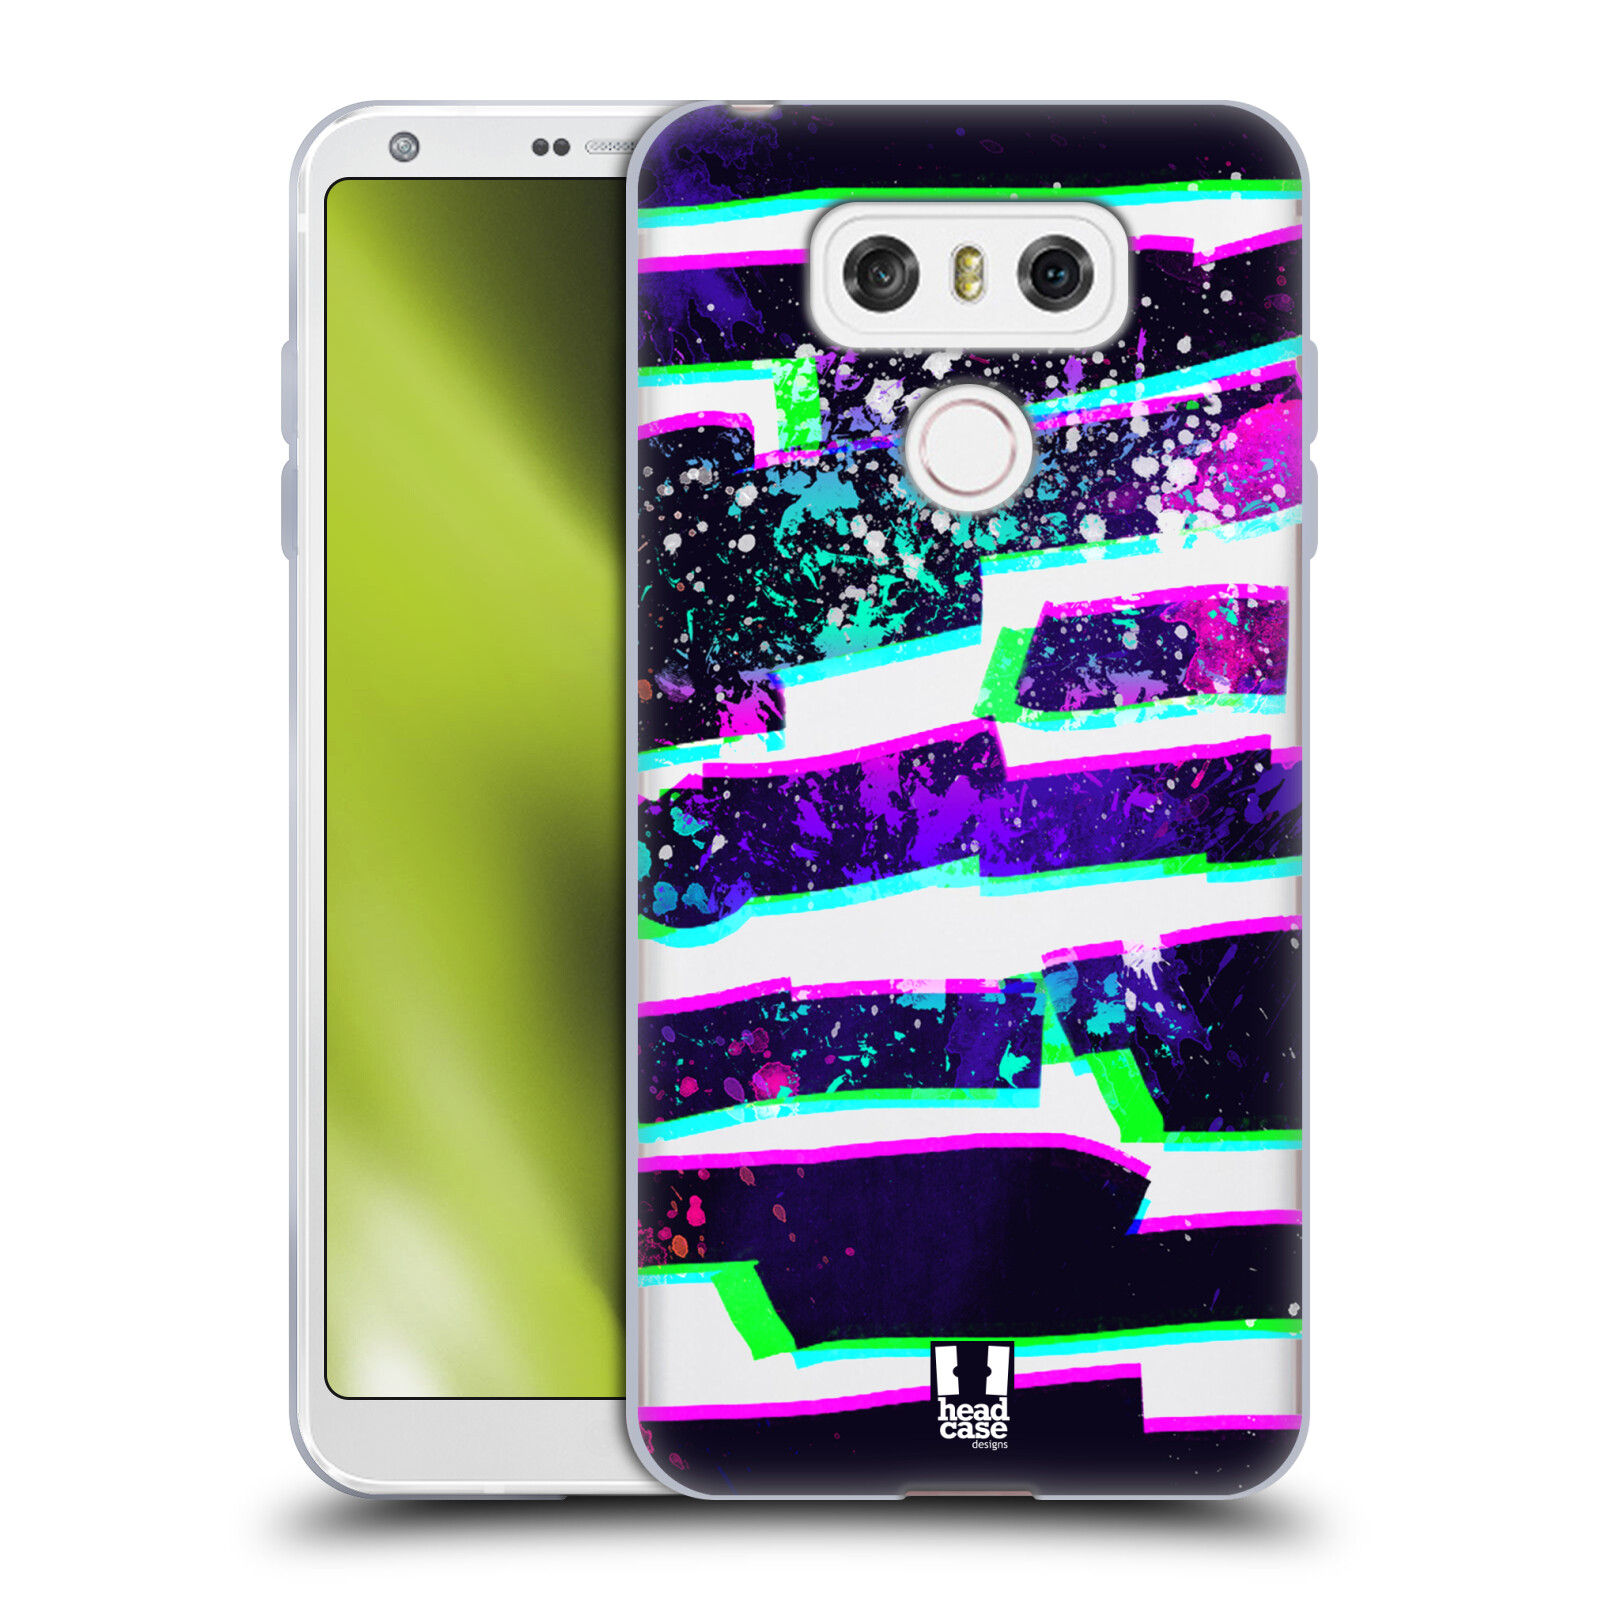 HEAD-CASE-DESIGNS-COLOURFUL-ABSTRACT-SOFT-GEL-CASE-FOR-LG-G6